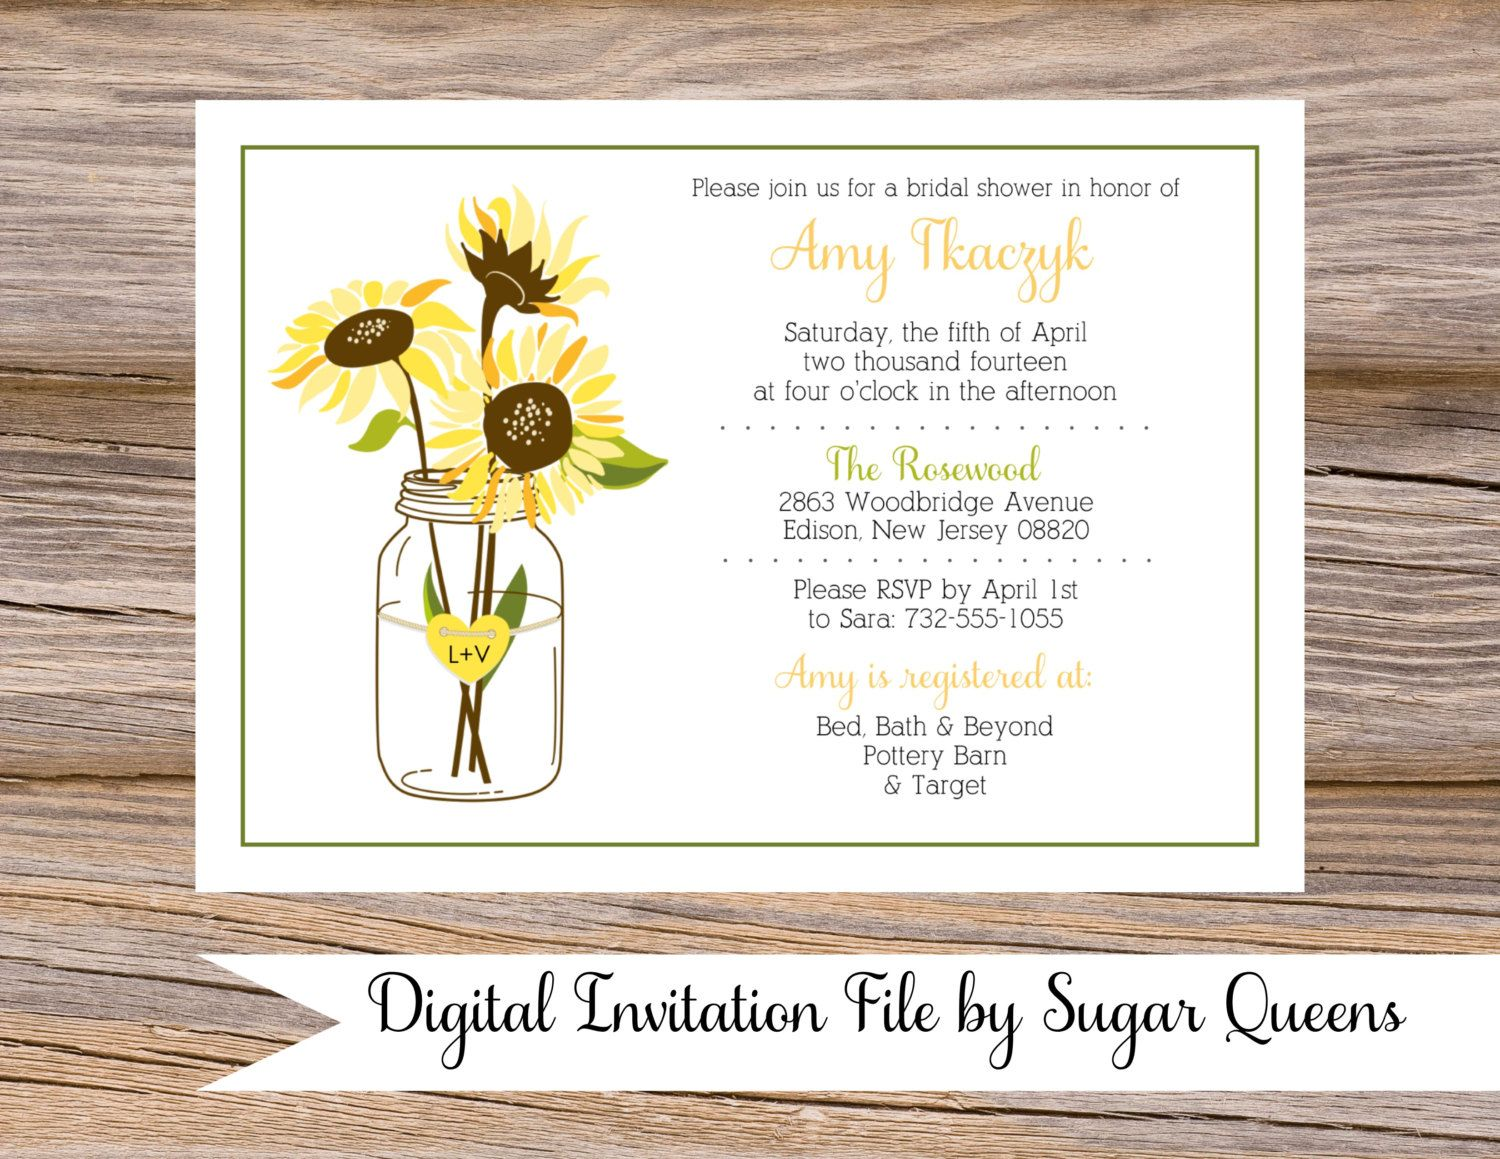 Mason jar sunflowers bridal shower invitations diy by sugarqueens mason jar sunflowers bridal shower invitations diy by sugarqueens filmwisefo Images